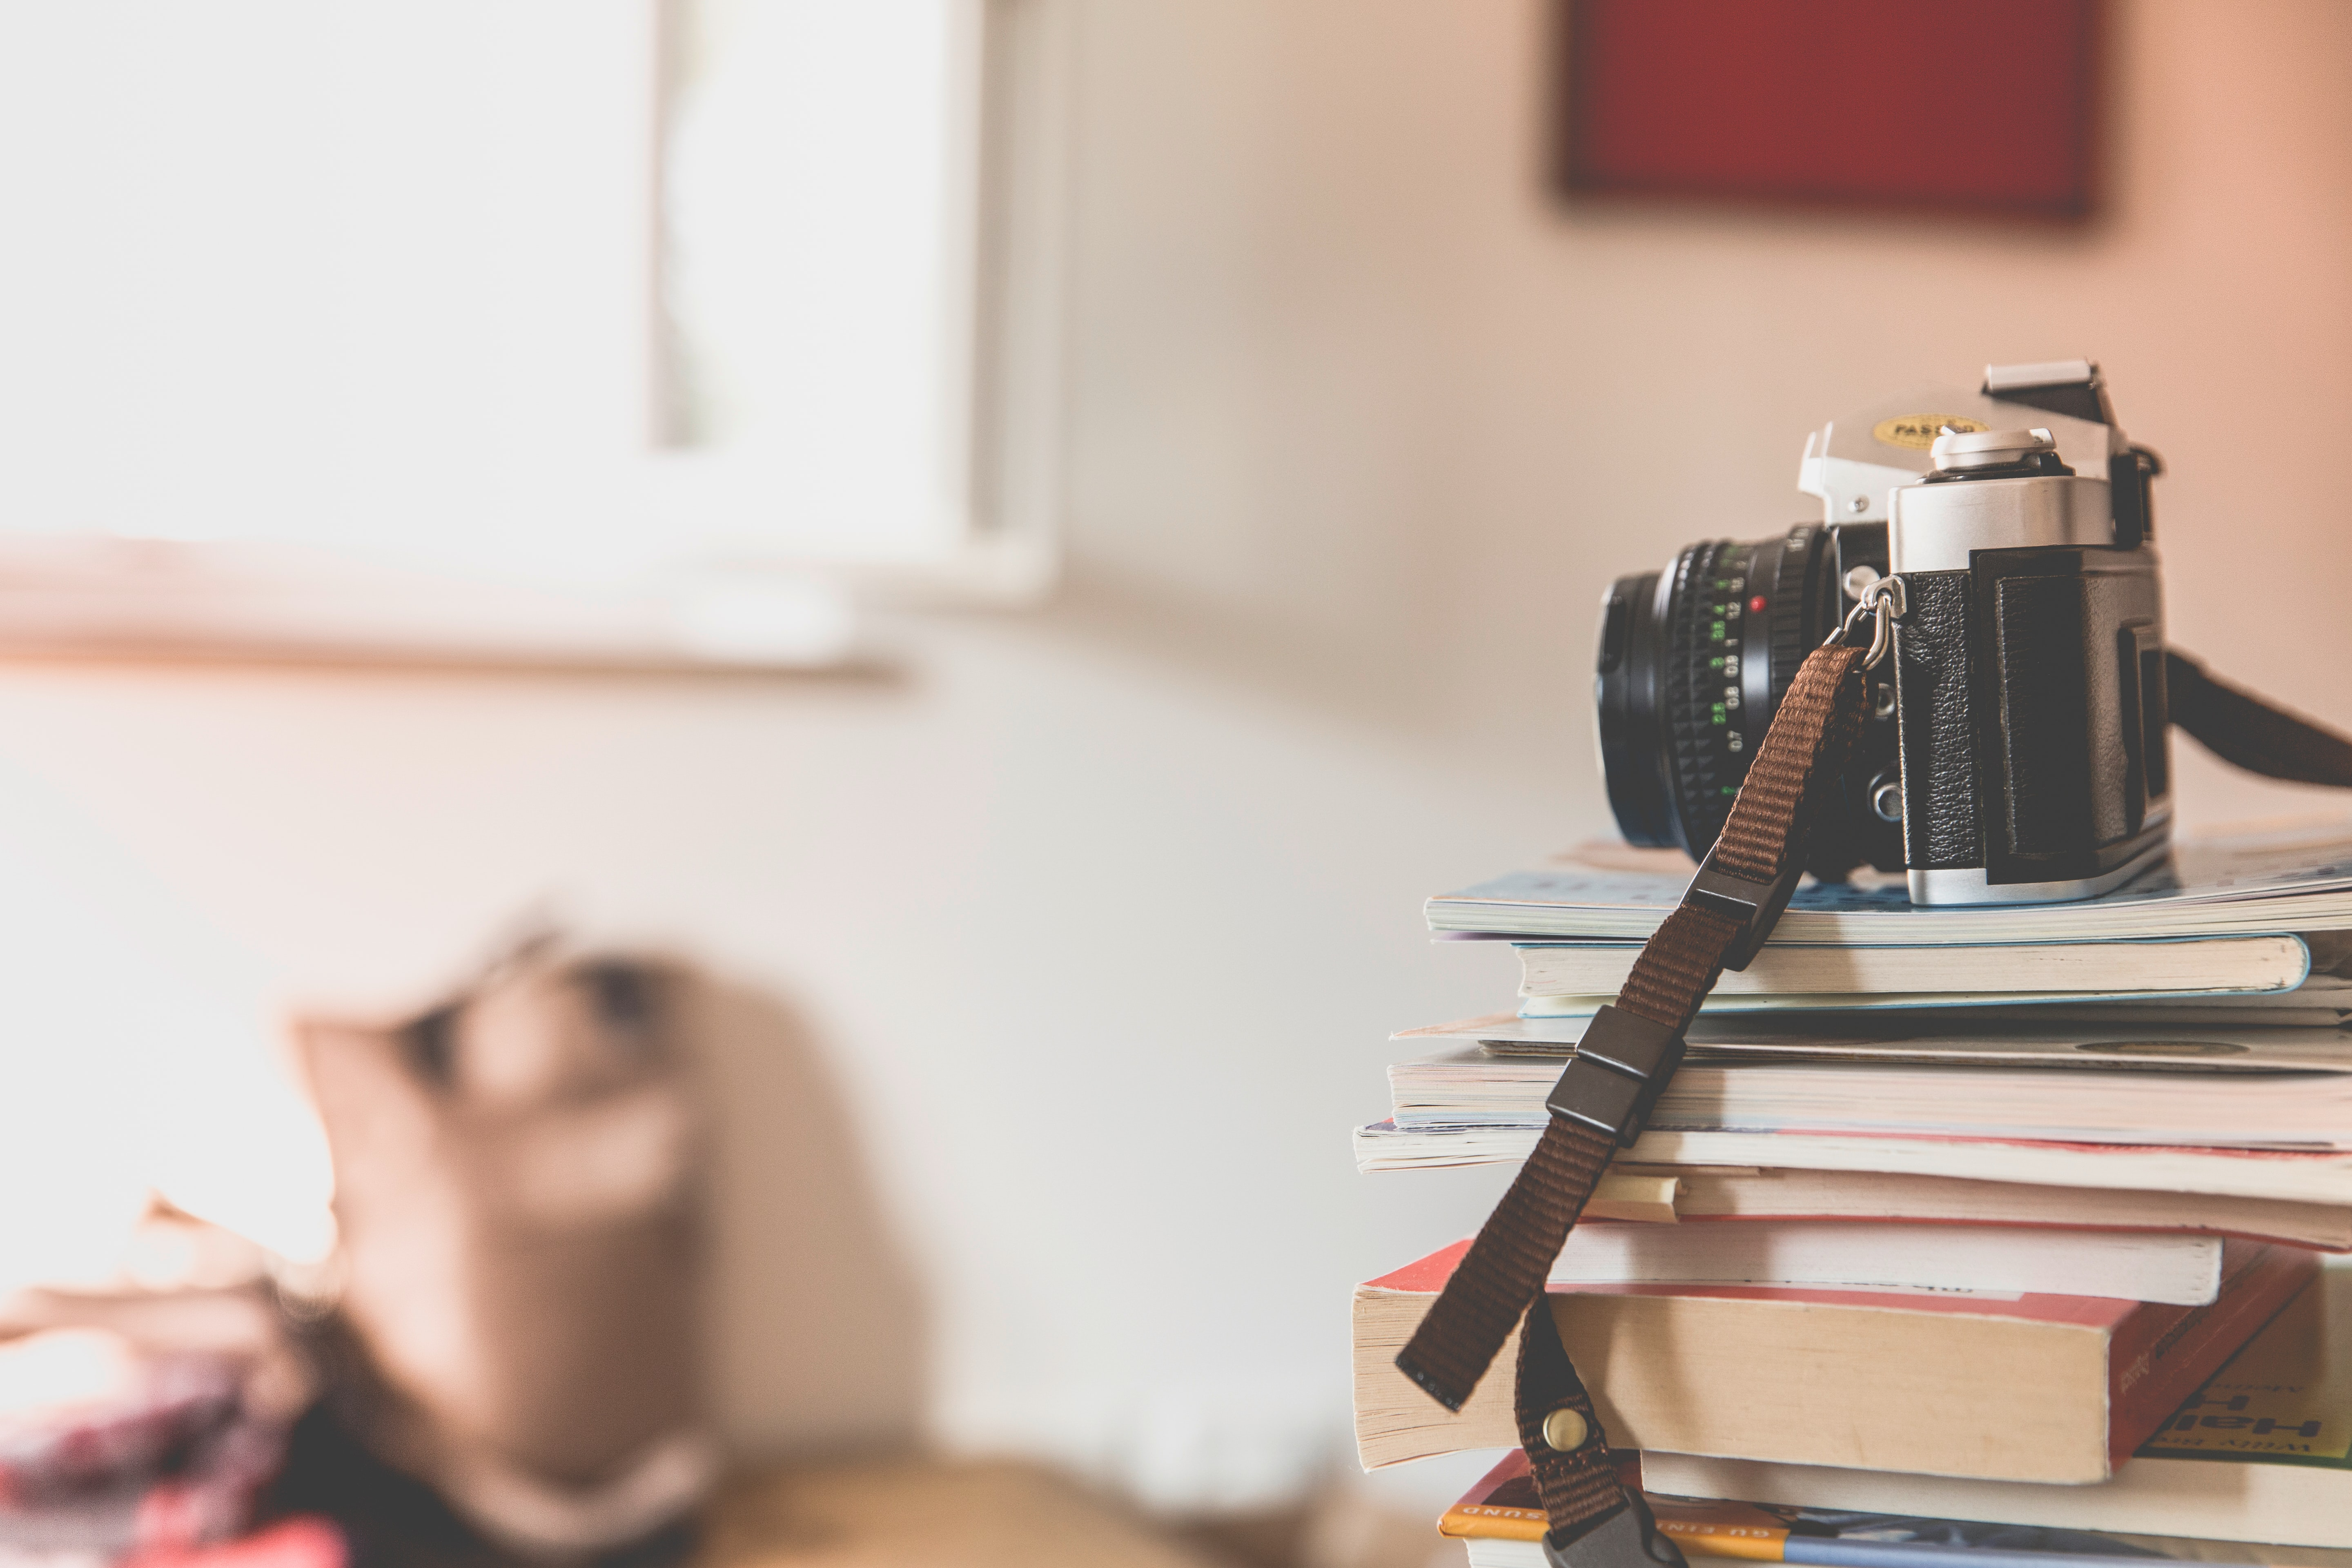 A camera with strap and lens sits on top of a stack of books and magazines